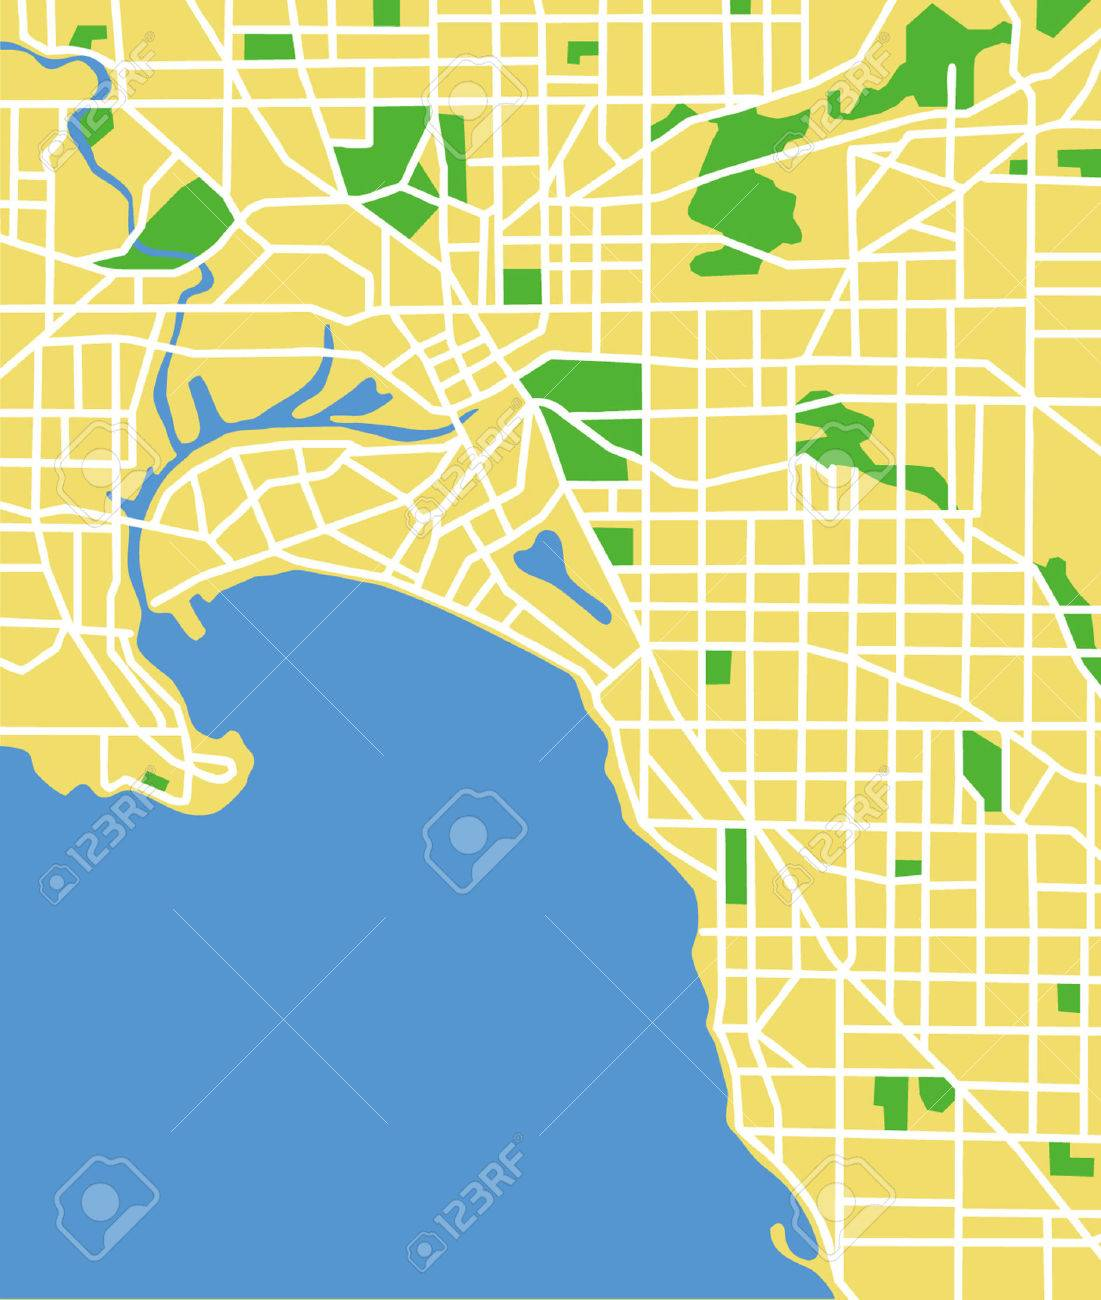 Map Of Melbourne Australia.Vector Pattern City Map Of Melbourne Australia Royalty Free